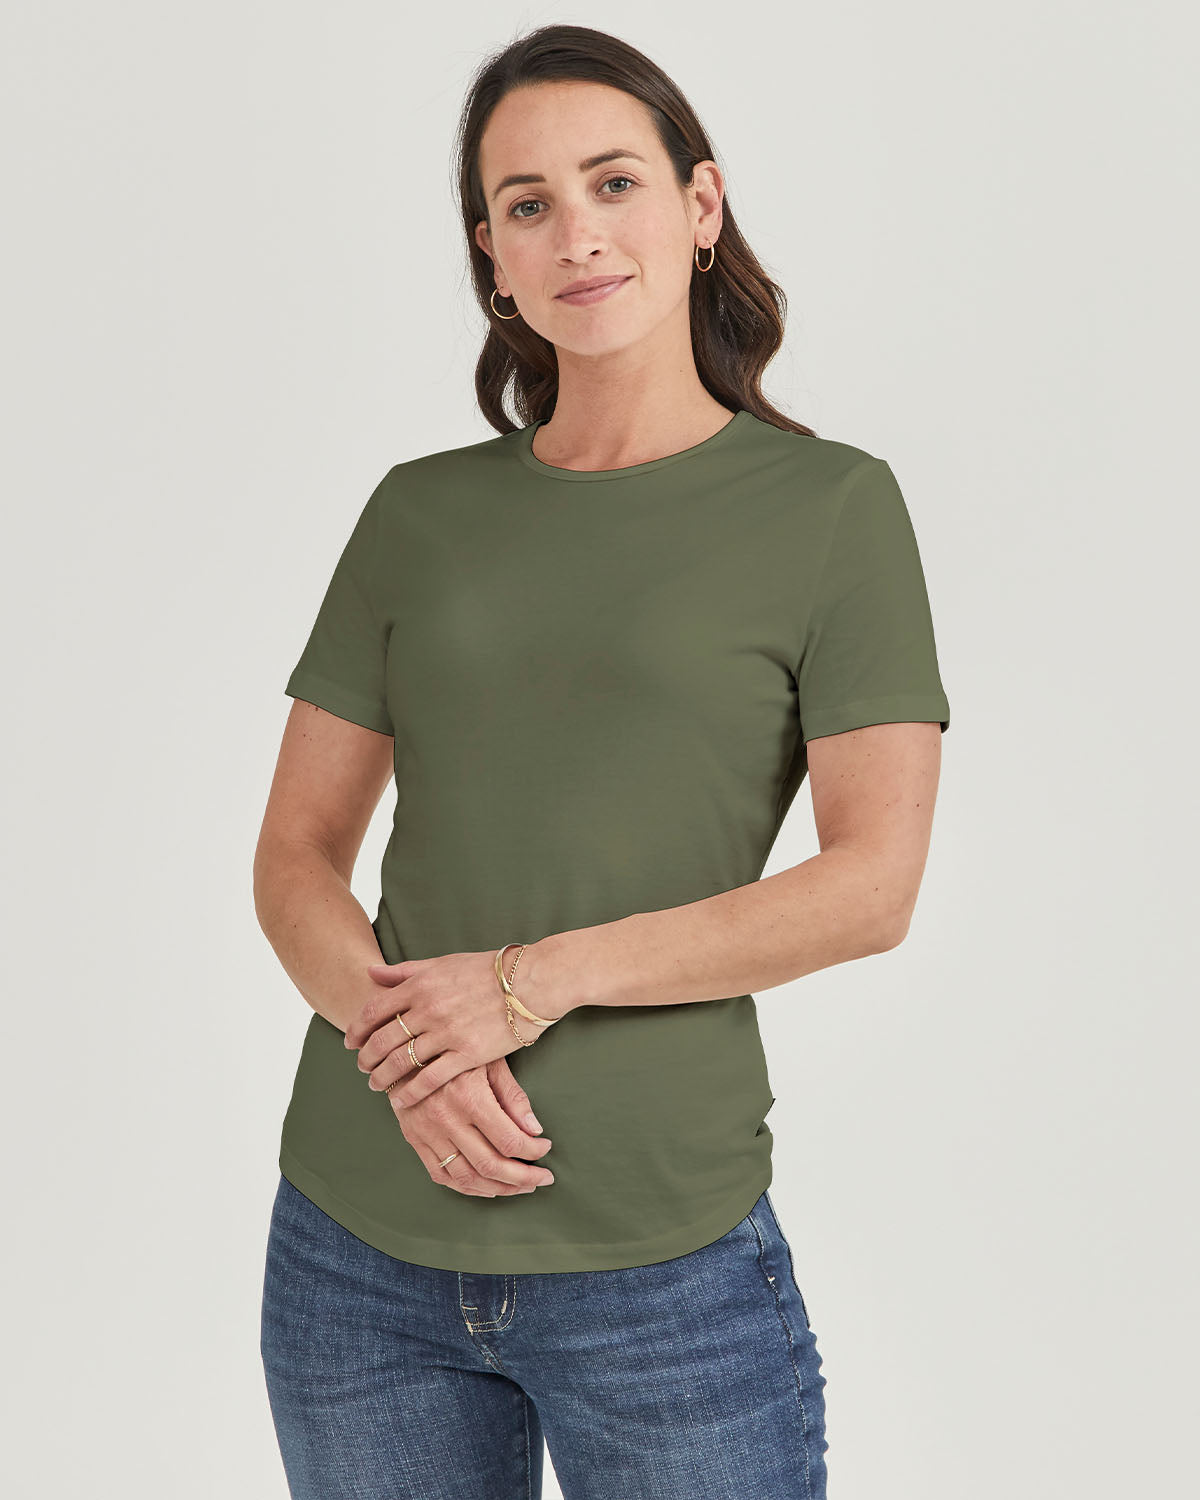 Womens Magic Fit Tees in Cactus Organic Cotton | Citizen Wolf